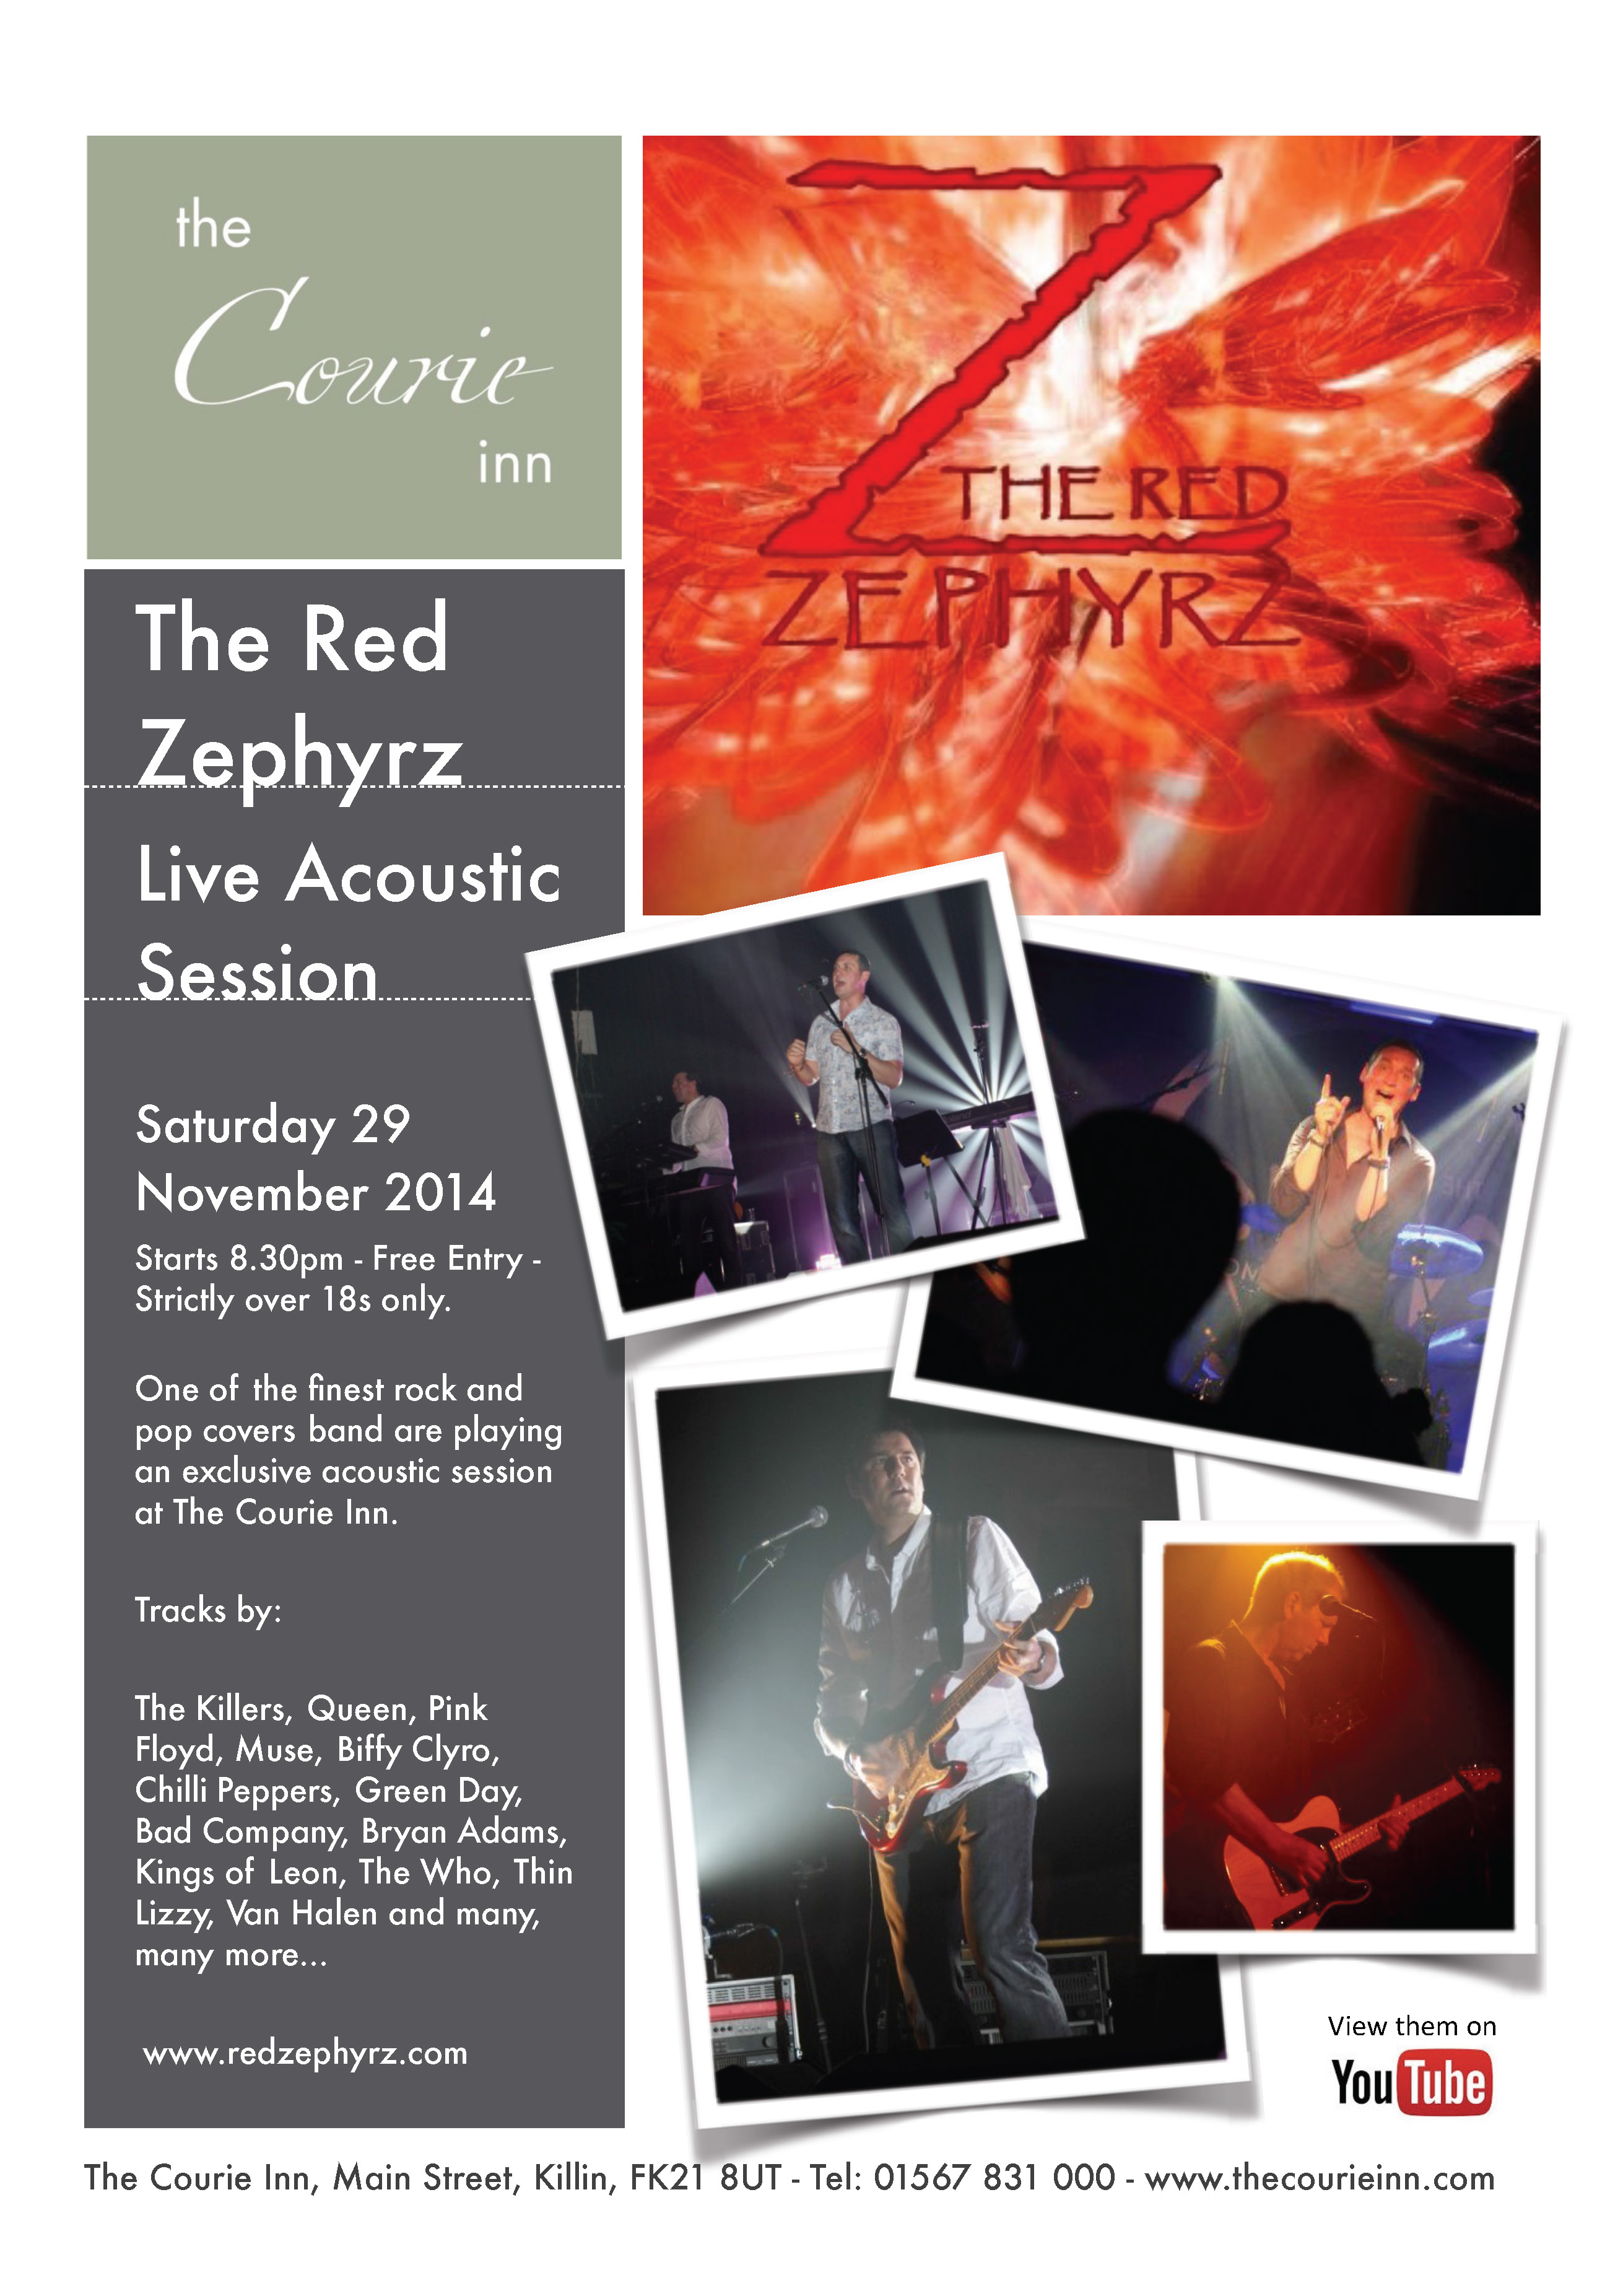 The Red Zephyrz at The Courie Inn